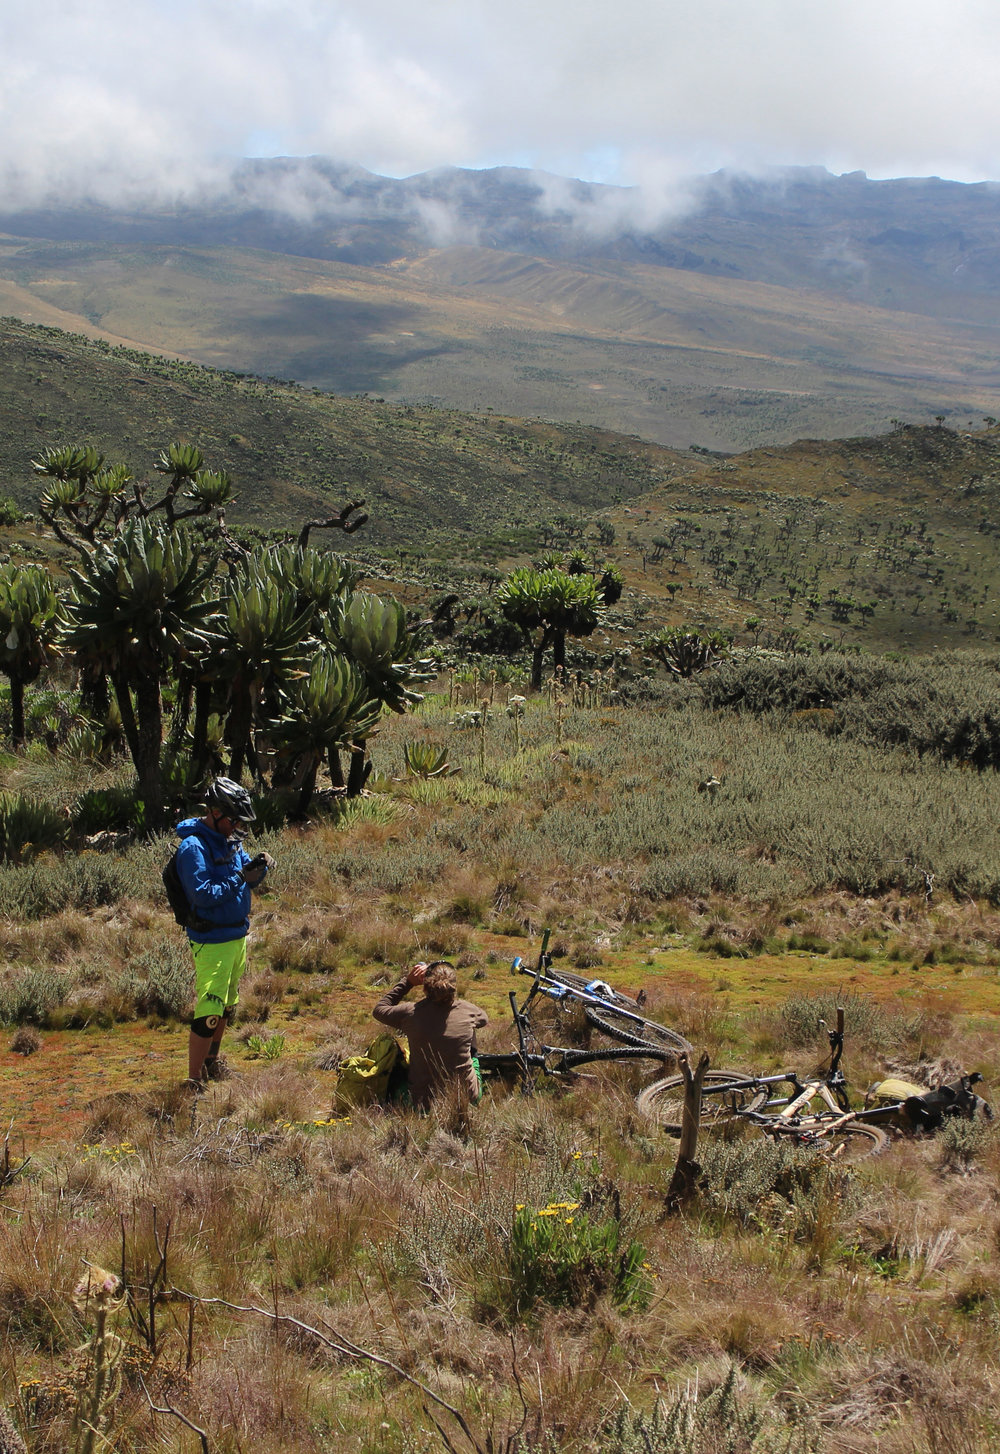 Mt. Elgon MTB expedition. - Clark Expeditions has pioneered MTB expeditions on Mt. Elgon. Having tested many different route options we now have the knowledge to take anyone with a decent level of fitness and a positive attitude to the top and back with a bike! There are different routes and many different levels of technicality, from fast downhill descents to long gentle journeys across the mountain.Whichever way we tackle the mountain you are sure to fall in love with its beauty and charm and go away with lasting memories.Mt. Elgon is 4321m and an extinct volcano. It is the largest freestanding volcanic base in the world. It straddles Uganda and Kenya with the highest point - Wagagai being in Uganda.There are 4 main routes up and down the mountain. Sasa, Sipi, Piswa and Suam trails. Sasa and Sipi are the most popular for hikers. The Sasa trail is the most direct route up the mountain so that also works for us on bikes, but the Sipi trail is very up and down and no good to ride. So we have utilised the less often hiked Piswa trail across the mountain. The two main options on bikes are up and down the Sasa trail -2 or 3 days - with more advanced riding and long, fast, more technical descents. Then up the Sasa and down the Piswa trail over 4 or 5 days with incredible riding and accessible to intermediate riders. The 4 day trip is physically tough with lots of hiking with your bike as well as riding, its certainly worth the effort though and is a true adventure!